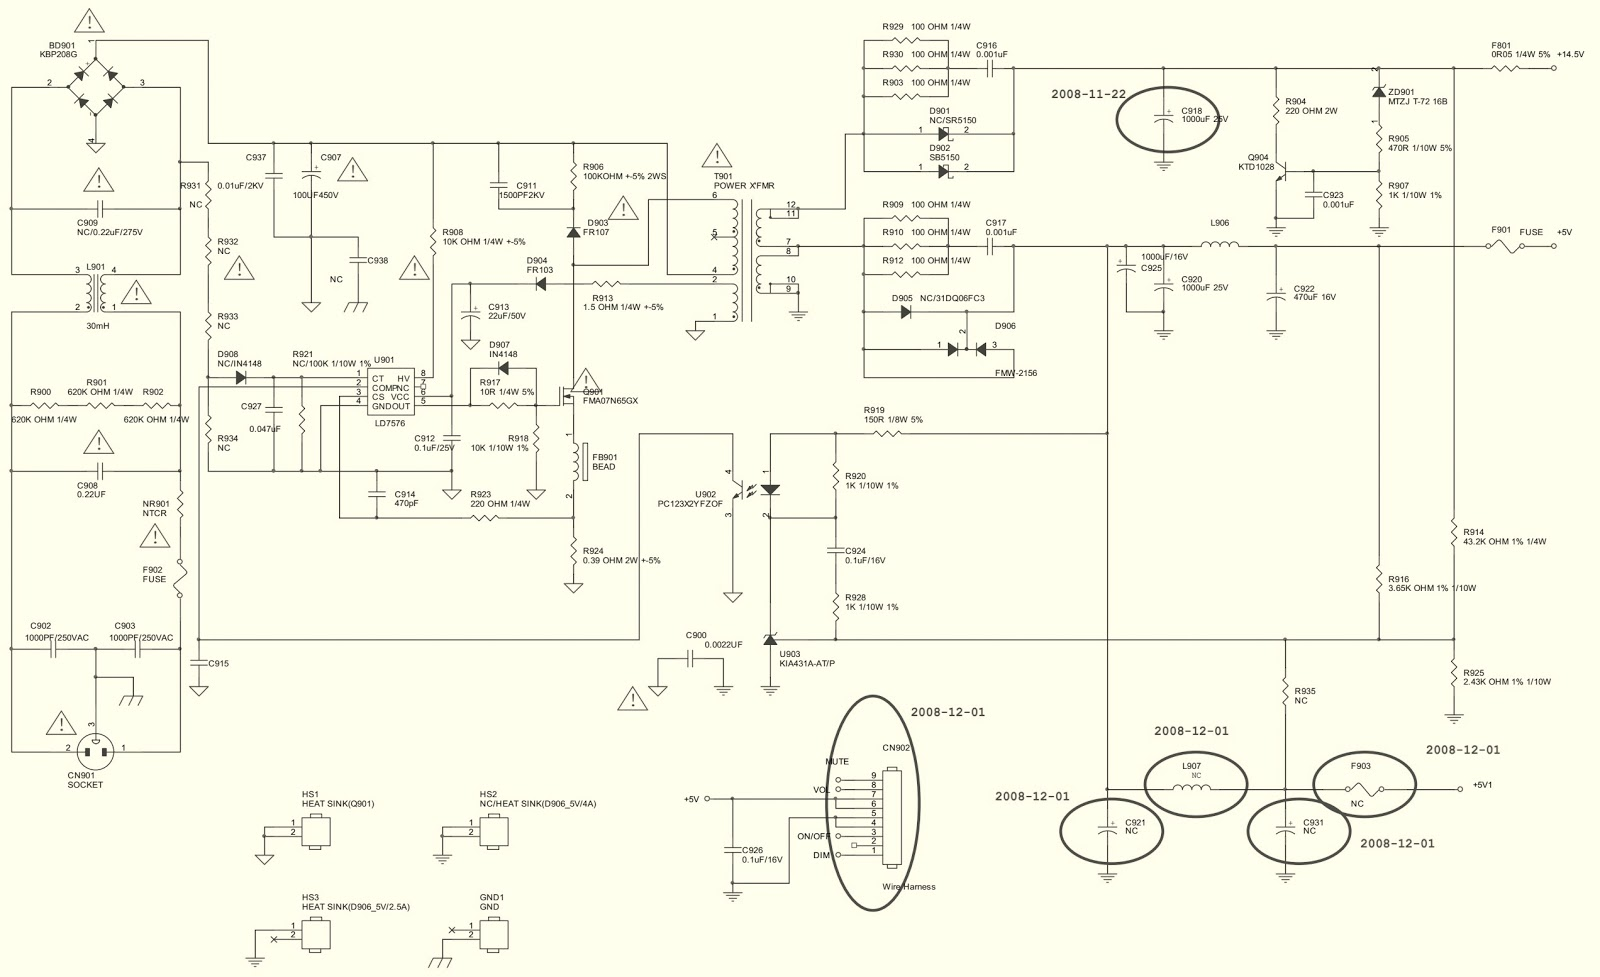 medium resolution of lcd monitor schematic diagram wiring diagrams aoc2236vwa lcd monitor circuit diagram 7155g2892 power board lcd monitor